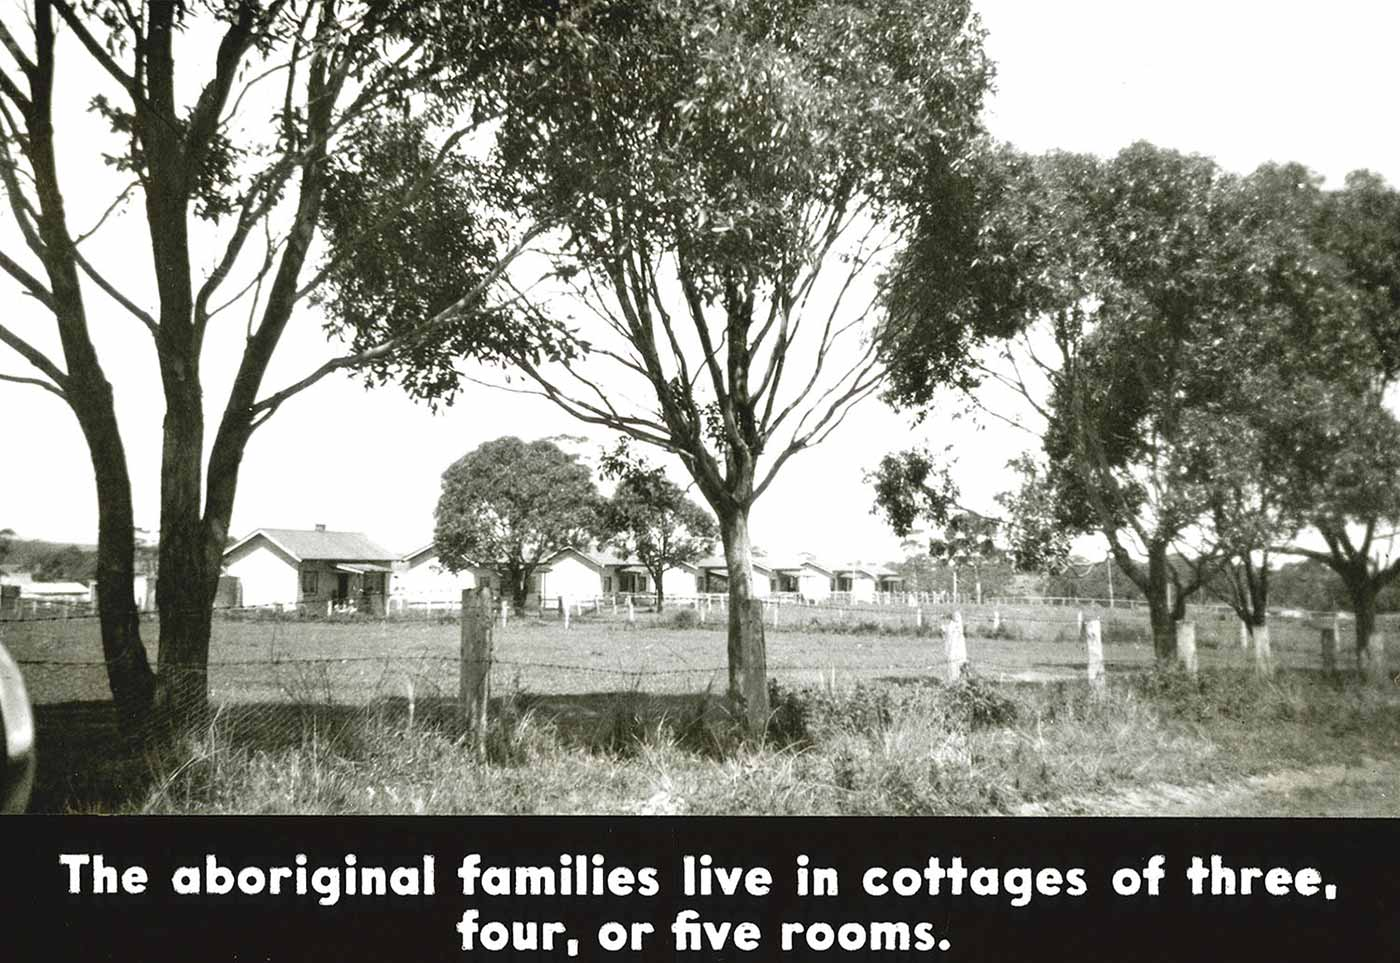 Black and white image of what appears to be a row of weatherboard cottages in a rural setting.